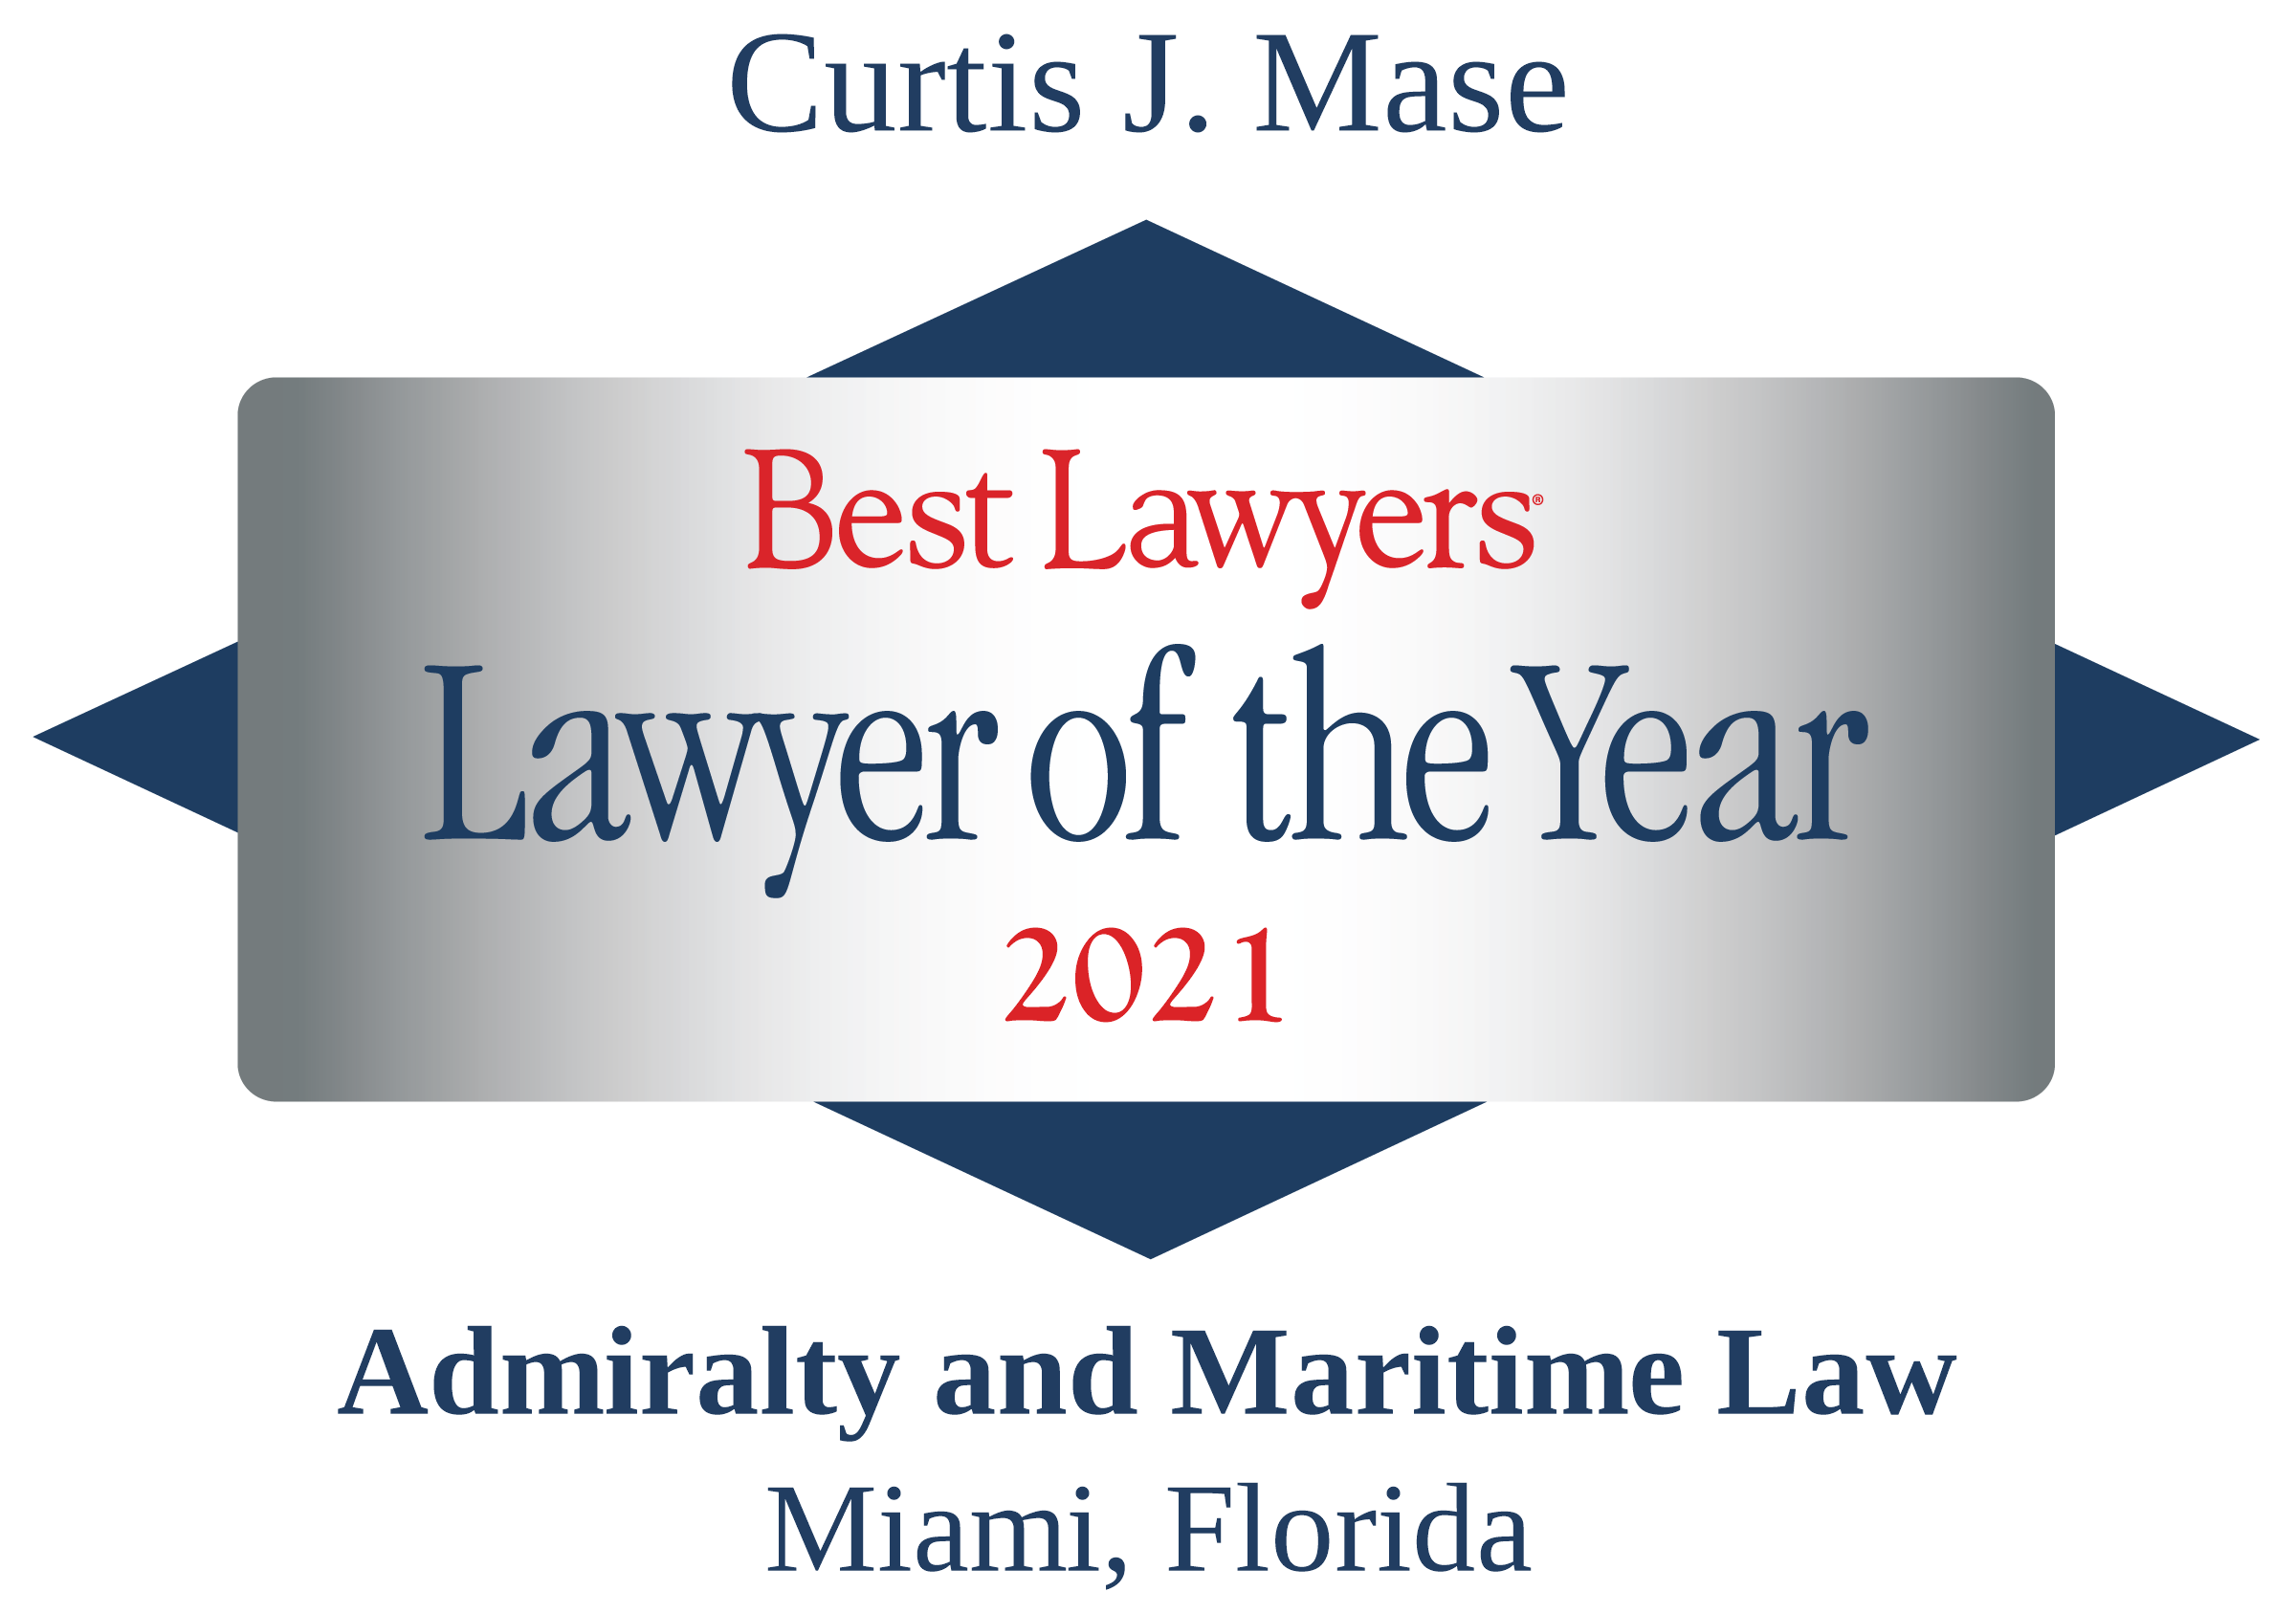 Curtis Mase, Lawyer of the Year 2021